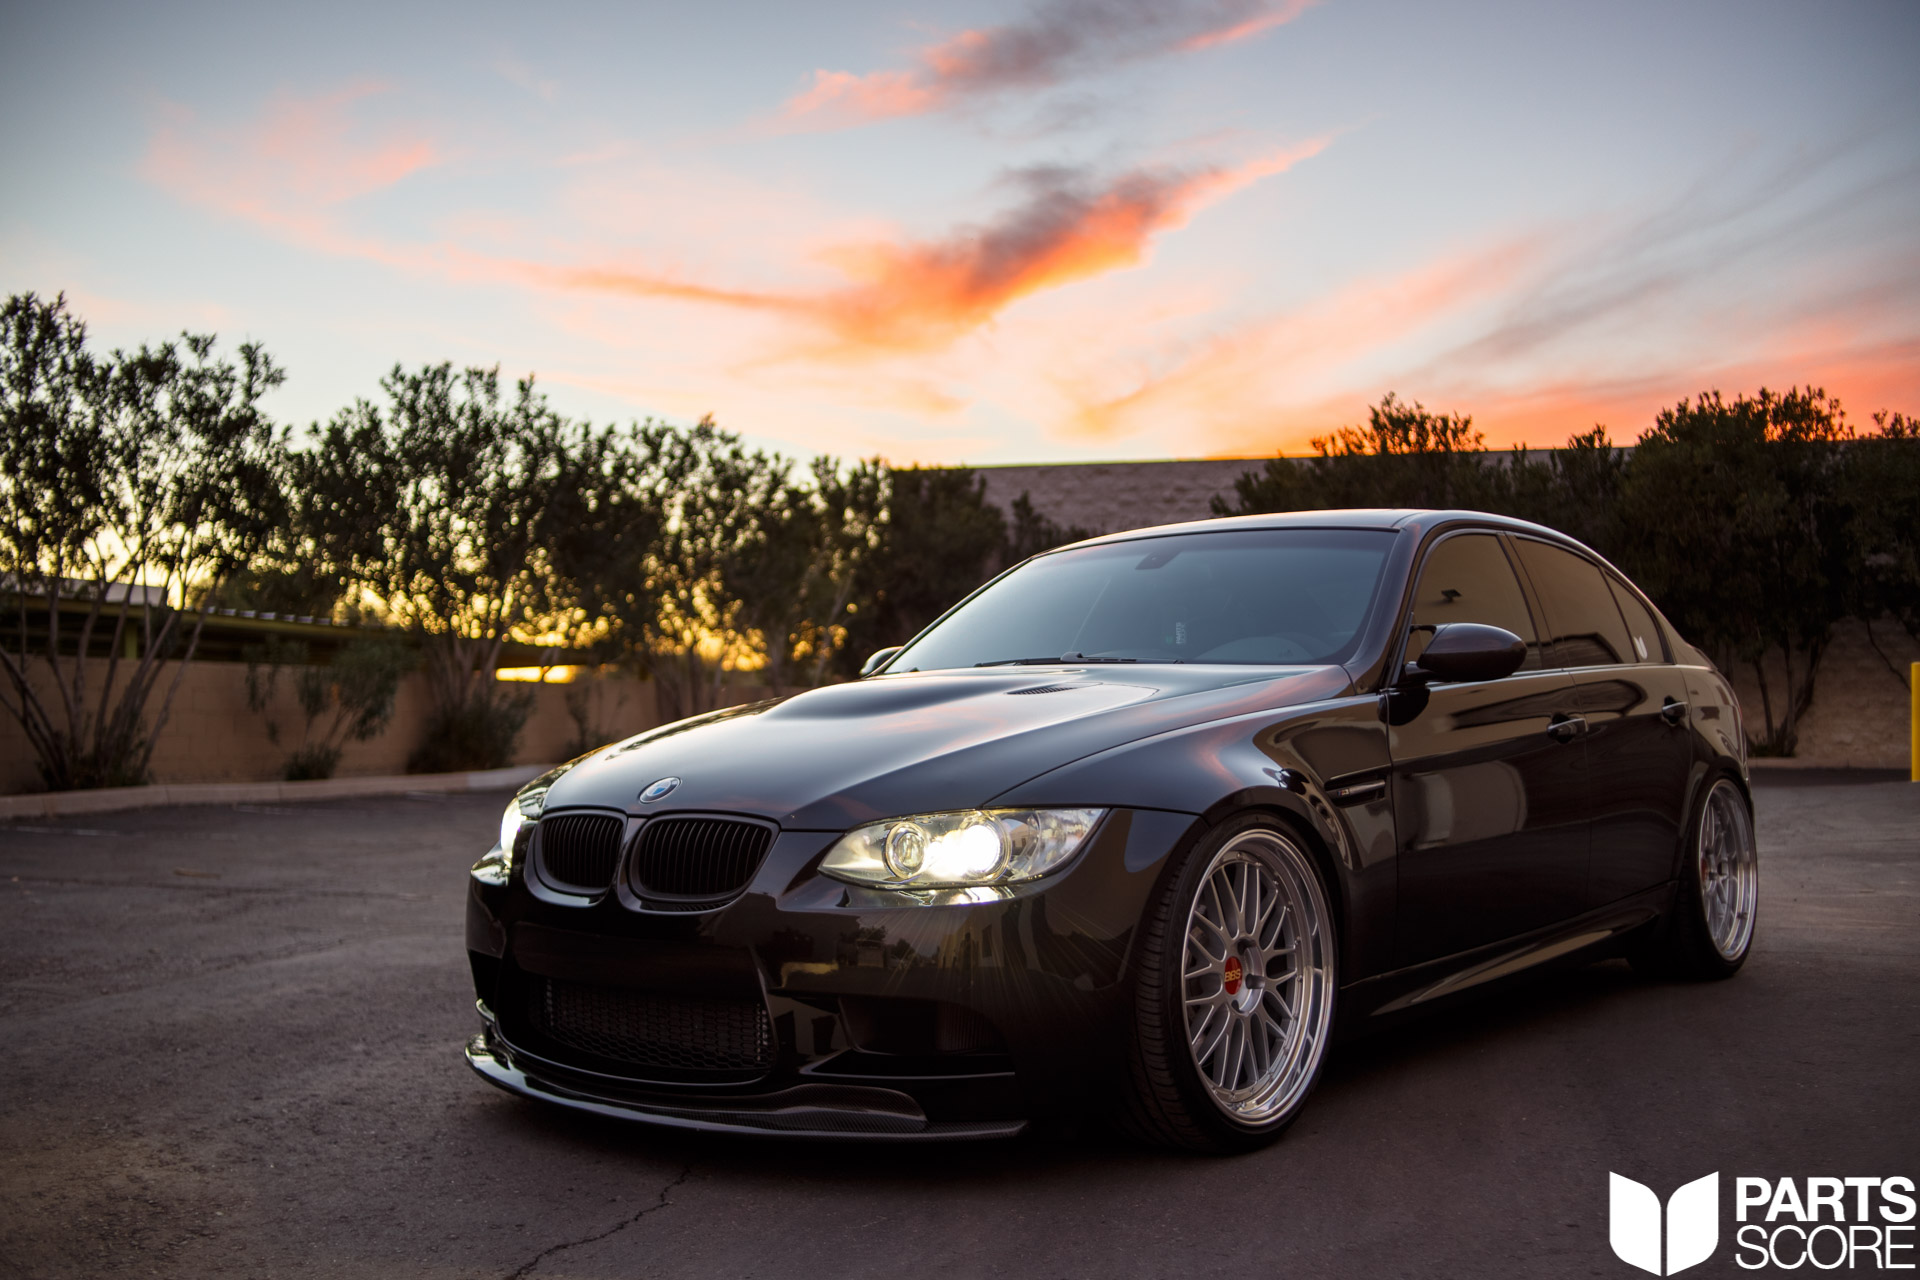 """ESS Tuning 625HP Supercharger Kit, KW V3 Coilovers, 20"""" BBS LM's mirror polished with Toyo Proxes T4+'s, Macht Schnell Mid Section, Dinan Rear Section, Carbon Fiber Front Lip, parts score, bmw, bmw m, bmw m4, bmw performance, bmw performance arizona, bmw performance scottsdale, bmw performance az, az bmw"""